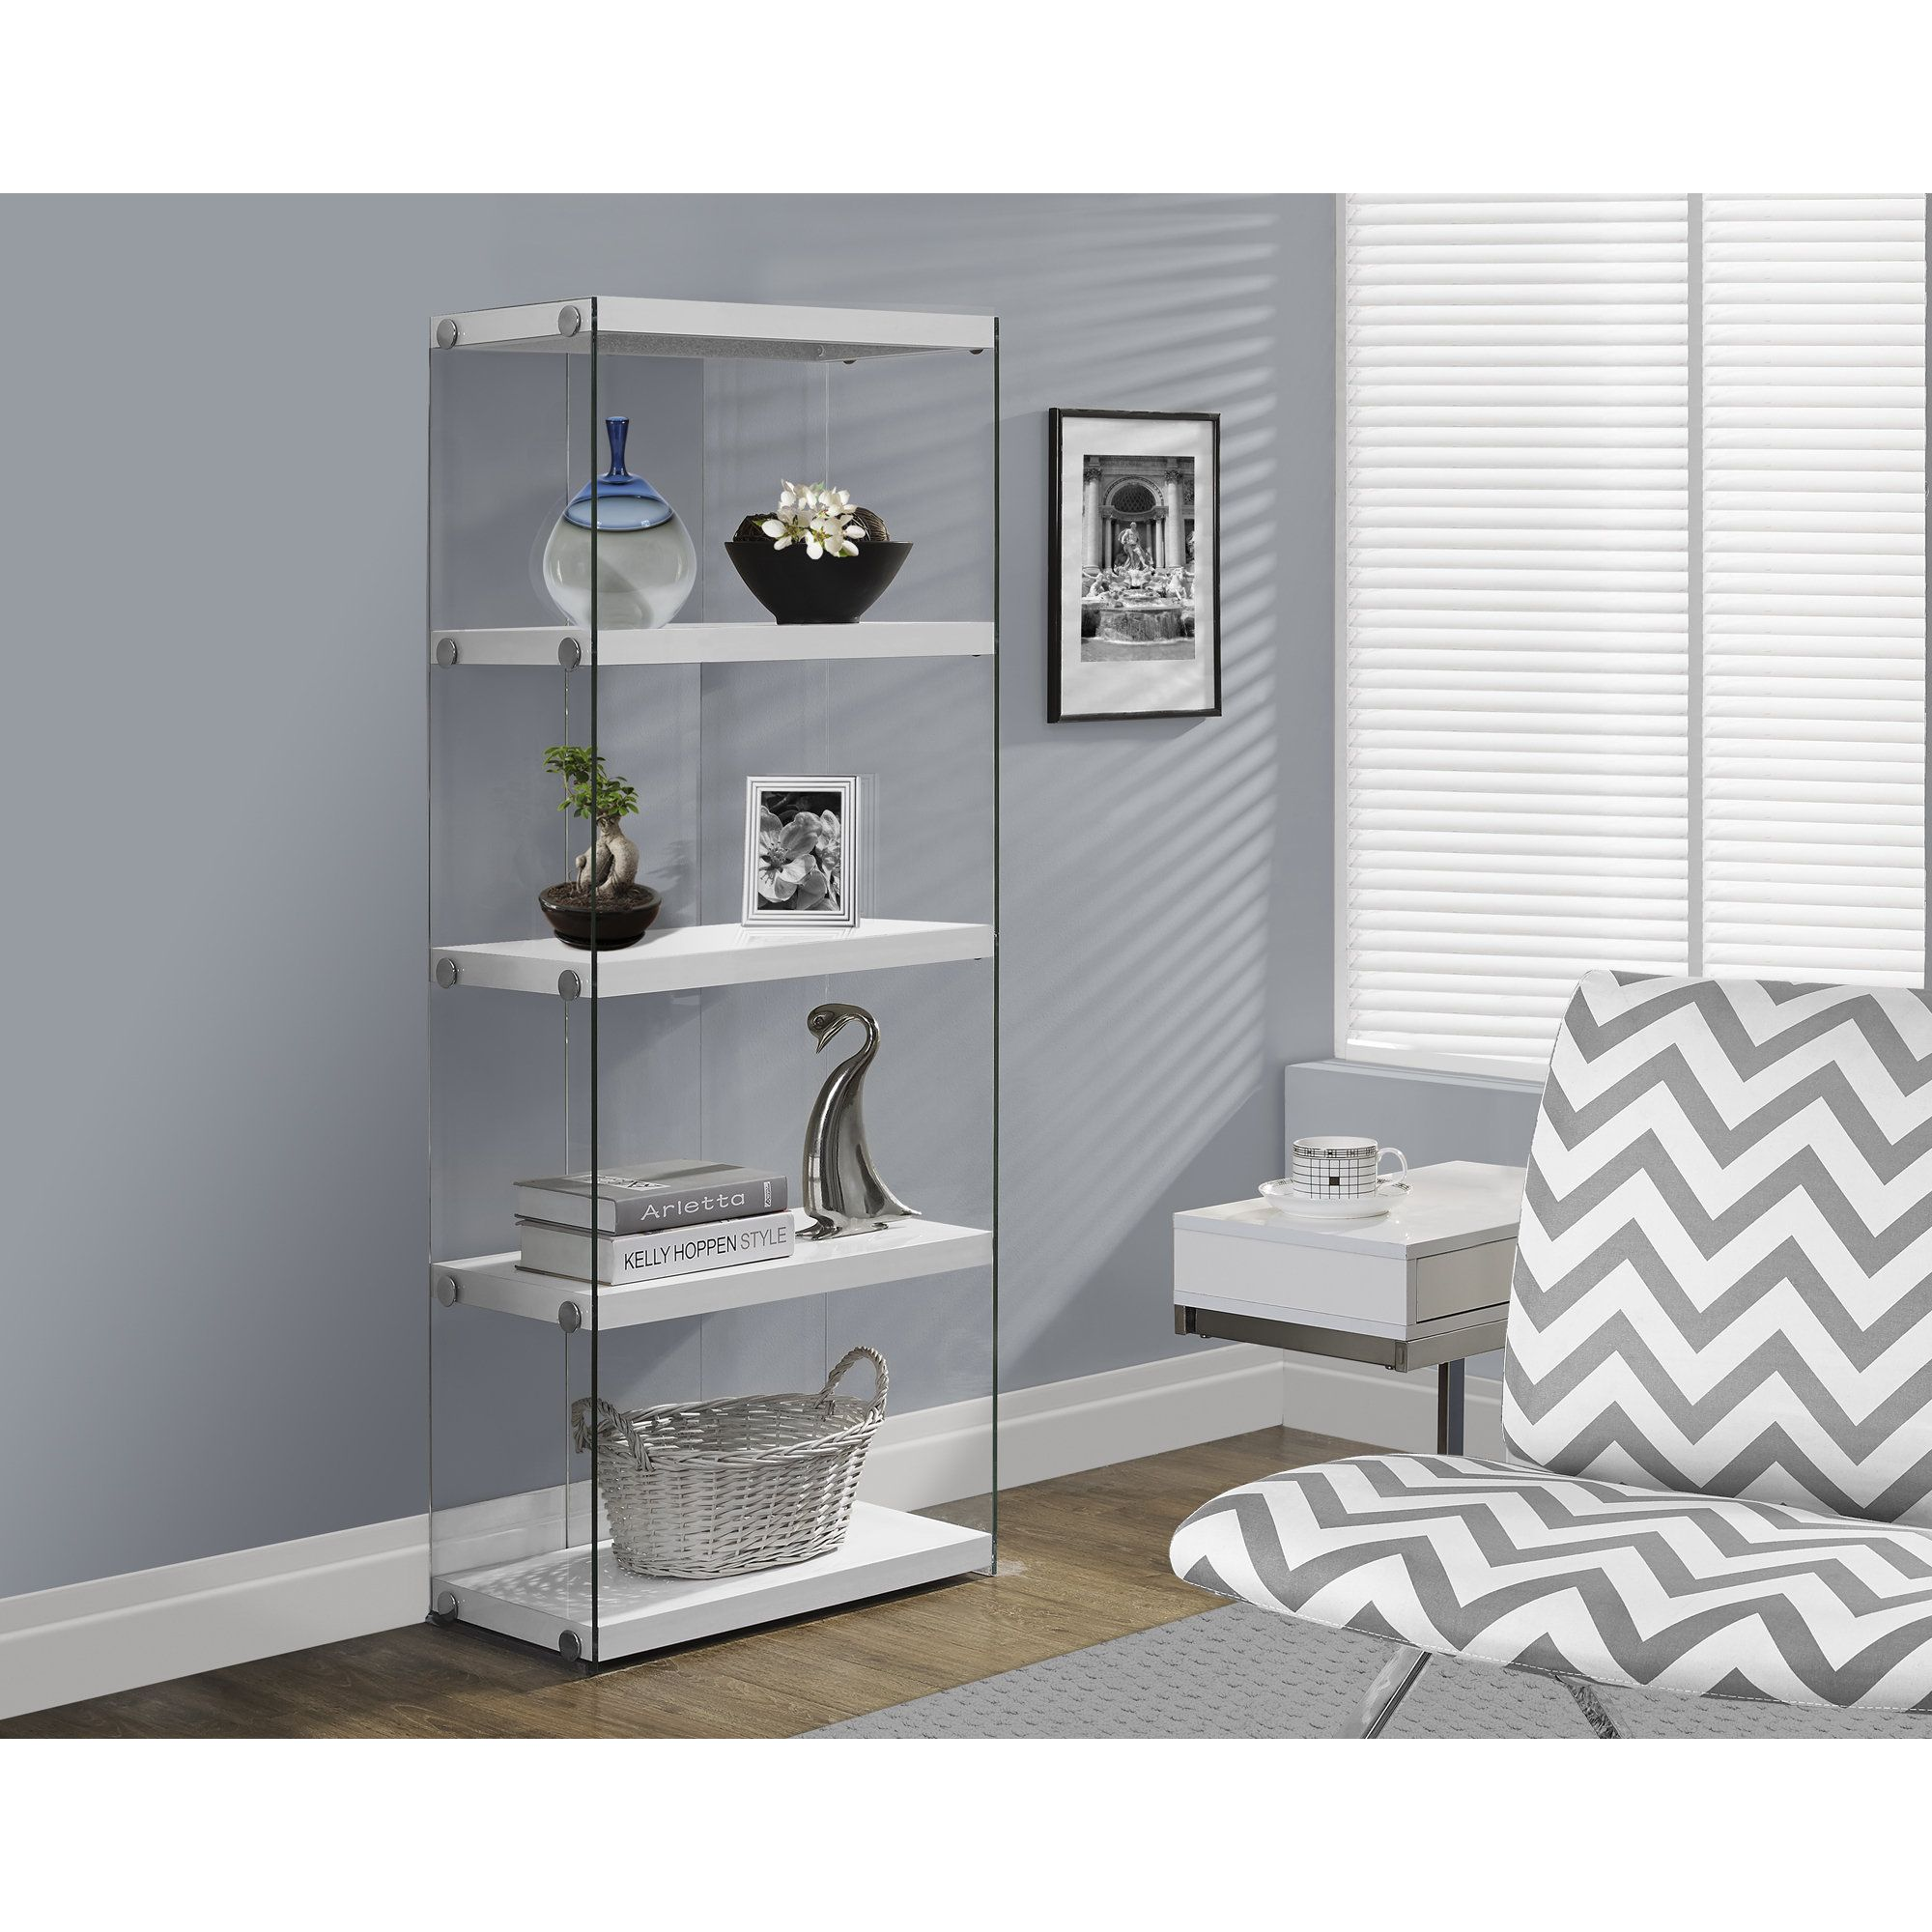 motivo home awesome contemporary storage me beautiful grids bookshelf shelving take black monarch modern wooden furniture of wonderful specialties bookcases bookcase bookshelves